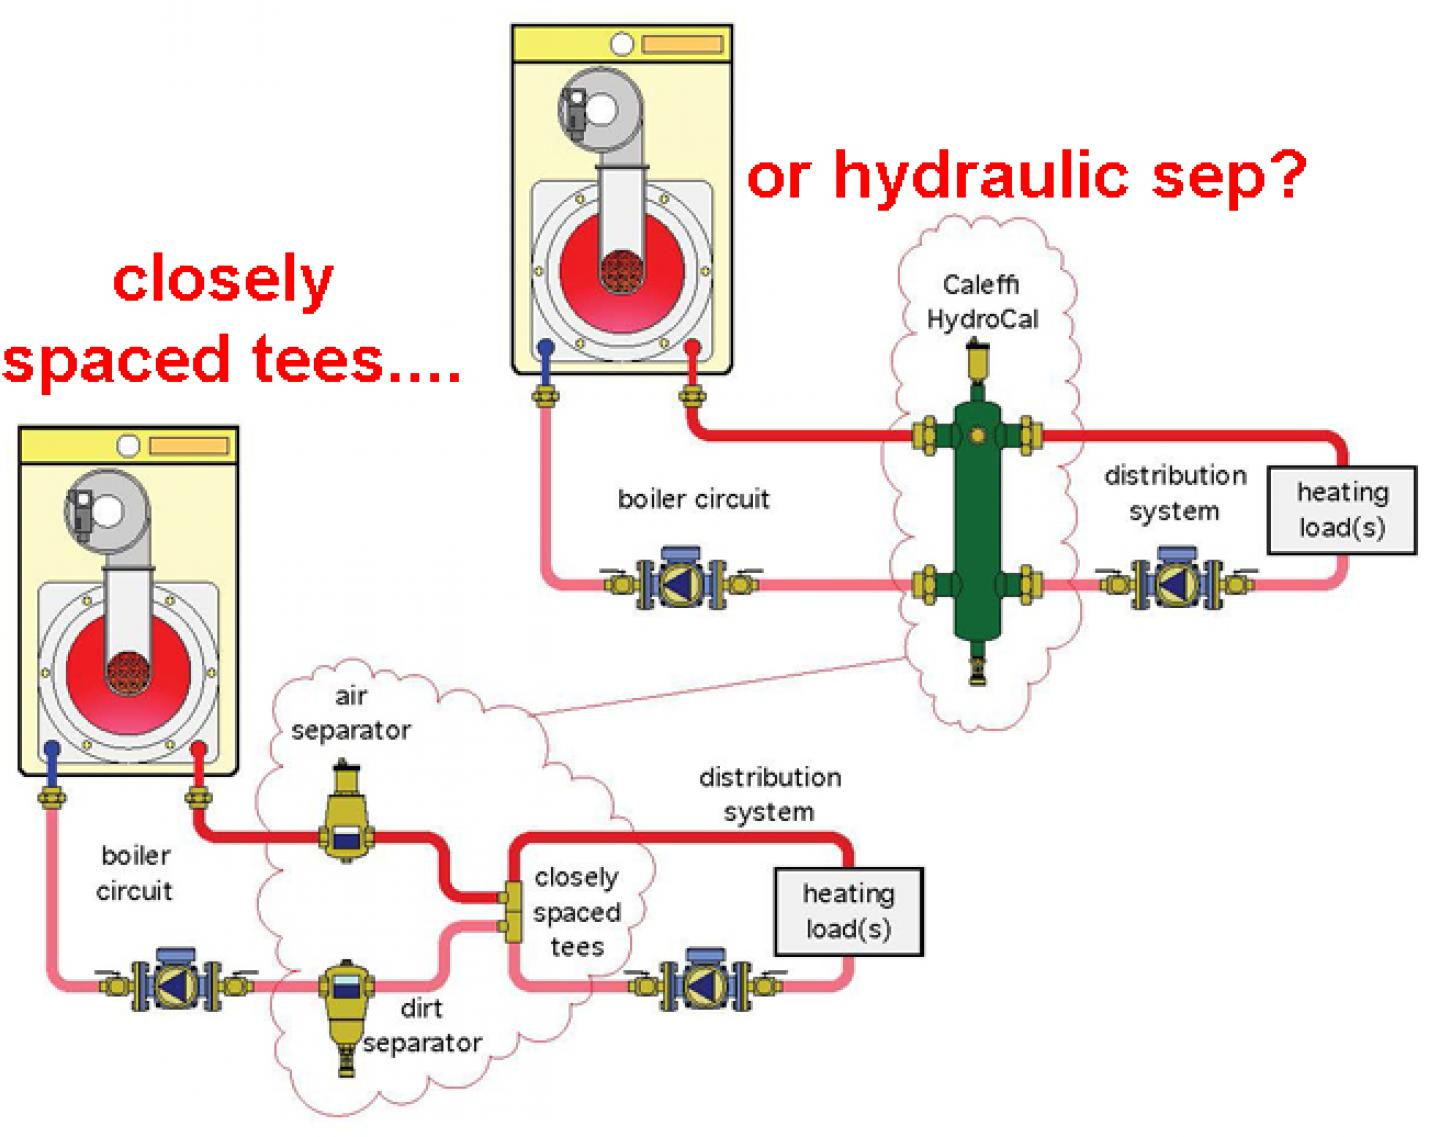 WRG-2833] 4 Way Mixing Valve Piping Diagram on 4-way water valve, 4-way mixing valves automatic, belimo valves three-way piping, 3-way hot water coil piping, radiant zone valves with piping, 4-way valve diagram, 4-way heater valve,